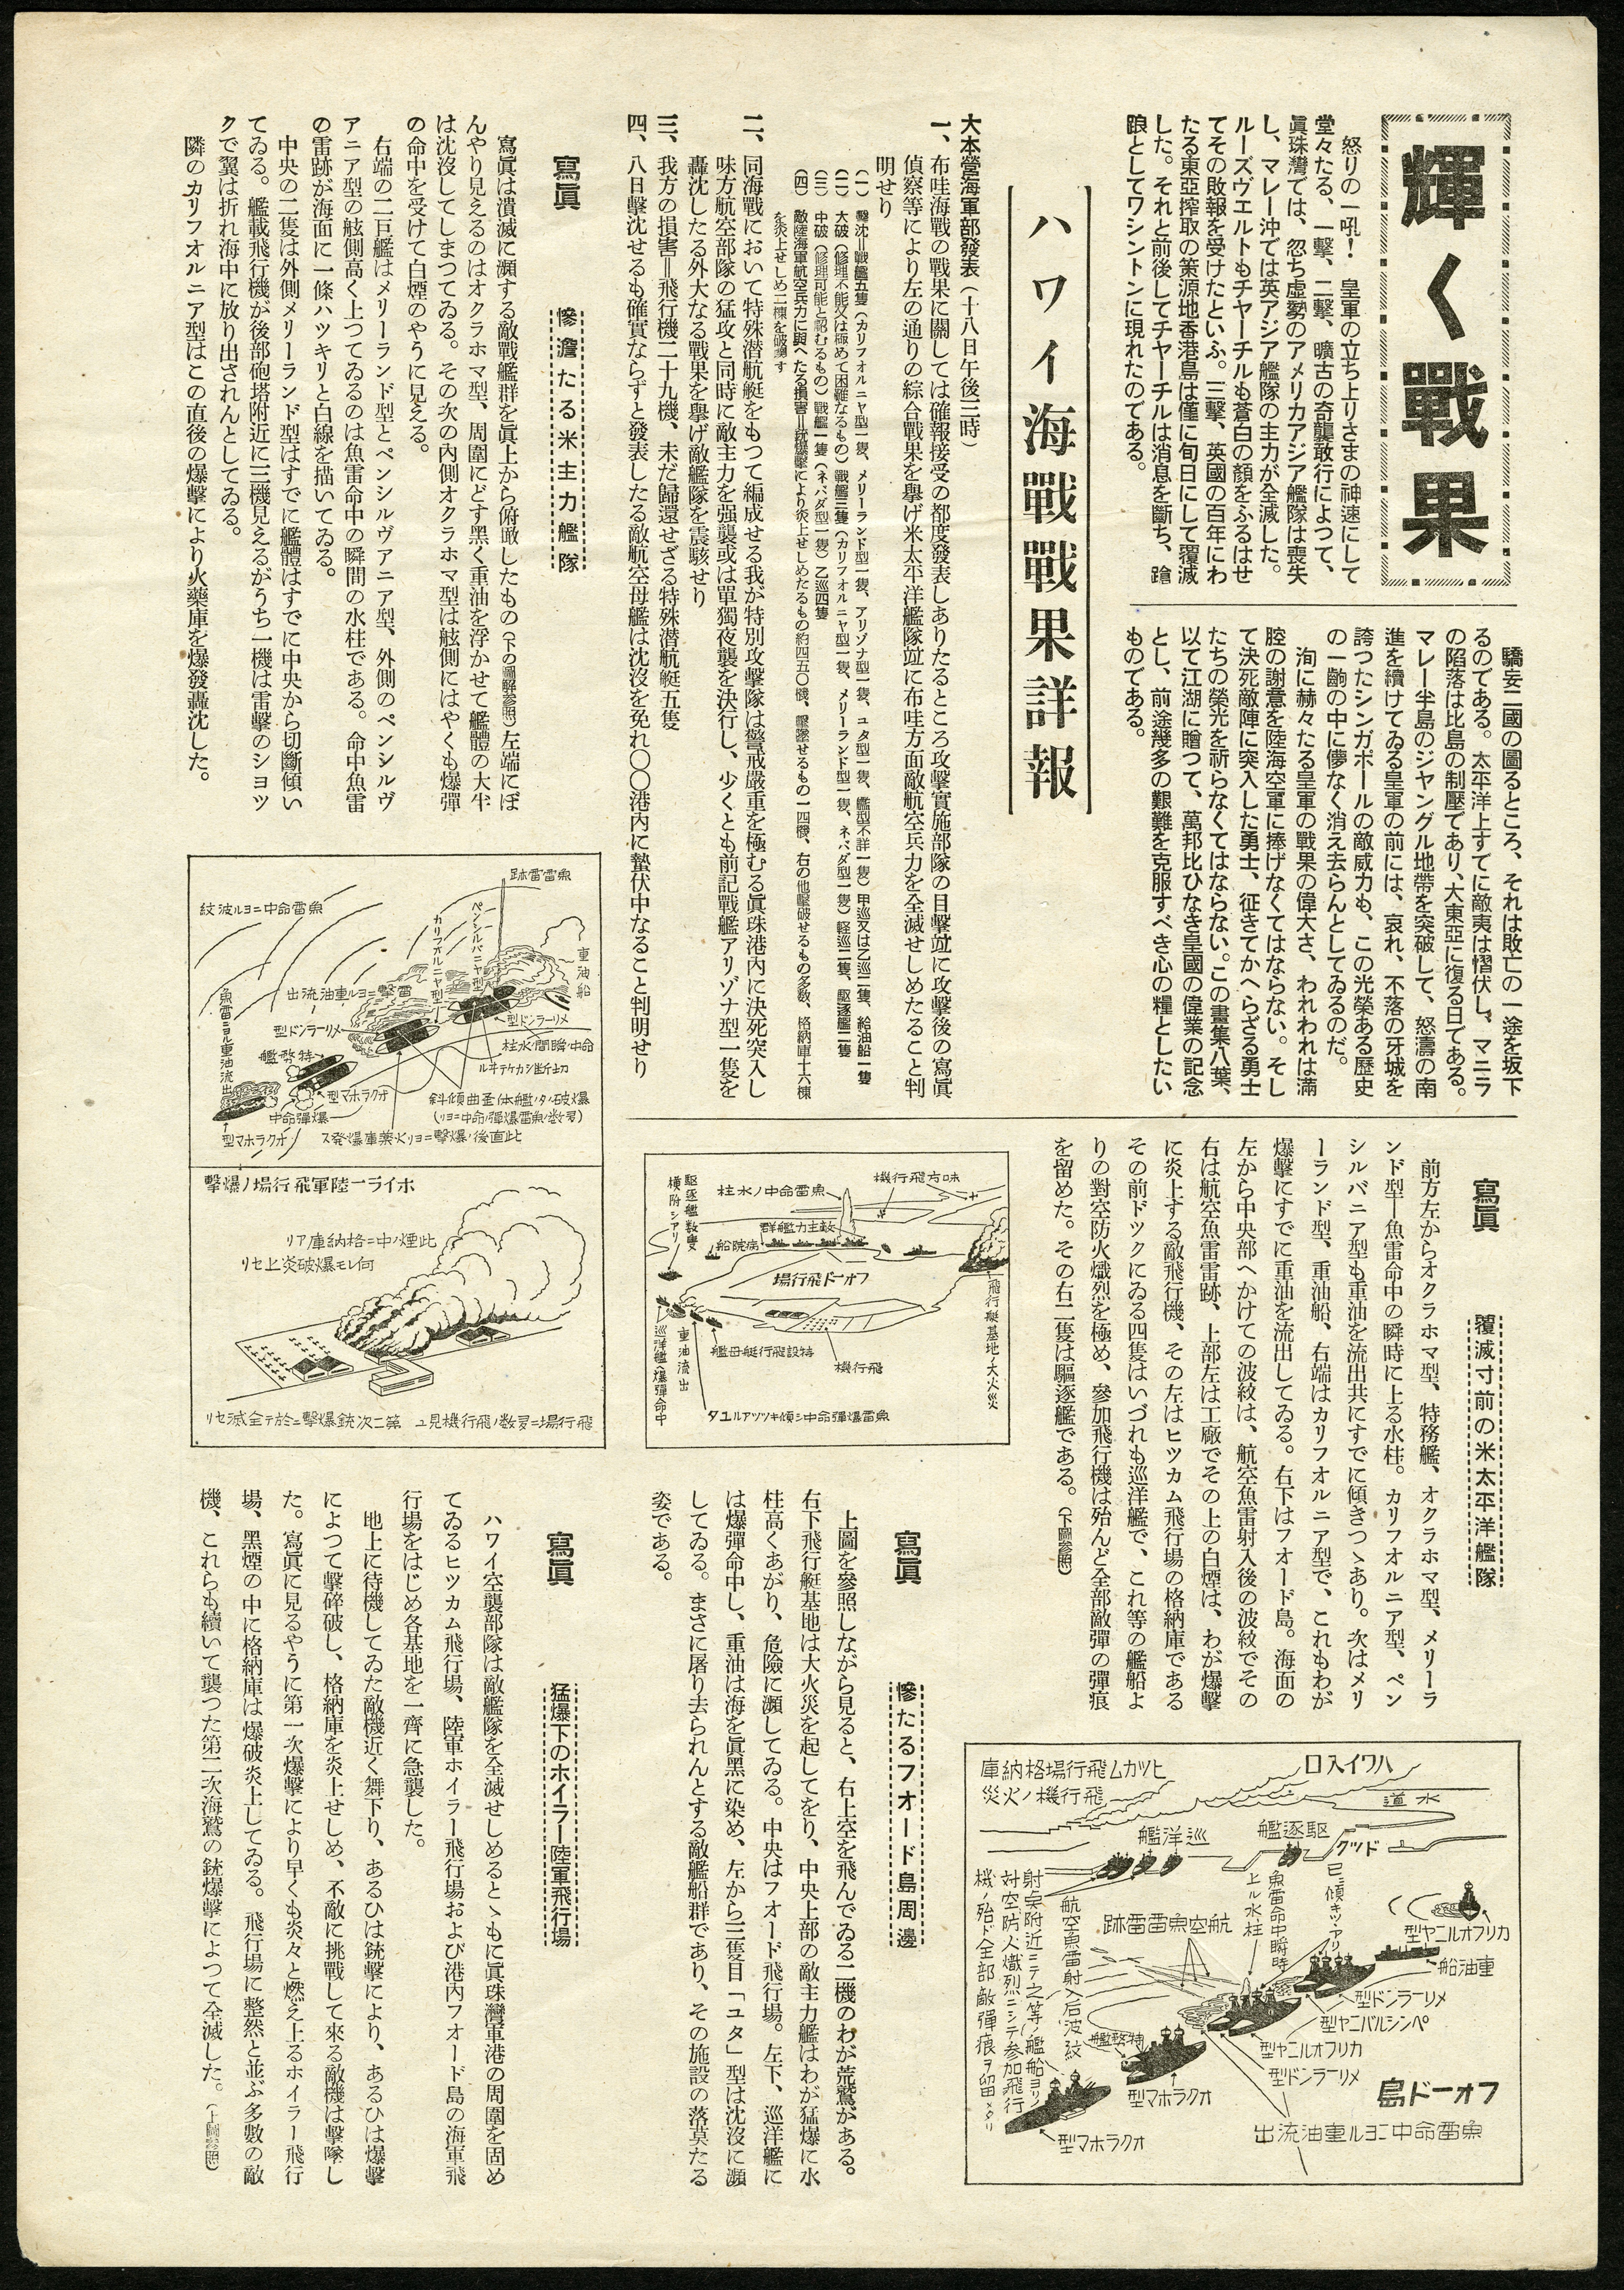 [Japanese announcement of the attack at Pearl Harbor], Japan, 1941. (The Gilder Lehrman Institute of American History, GLC09552.01 p1)